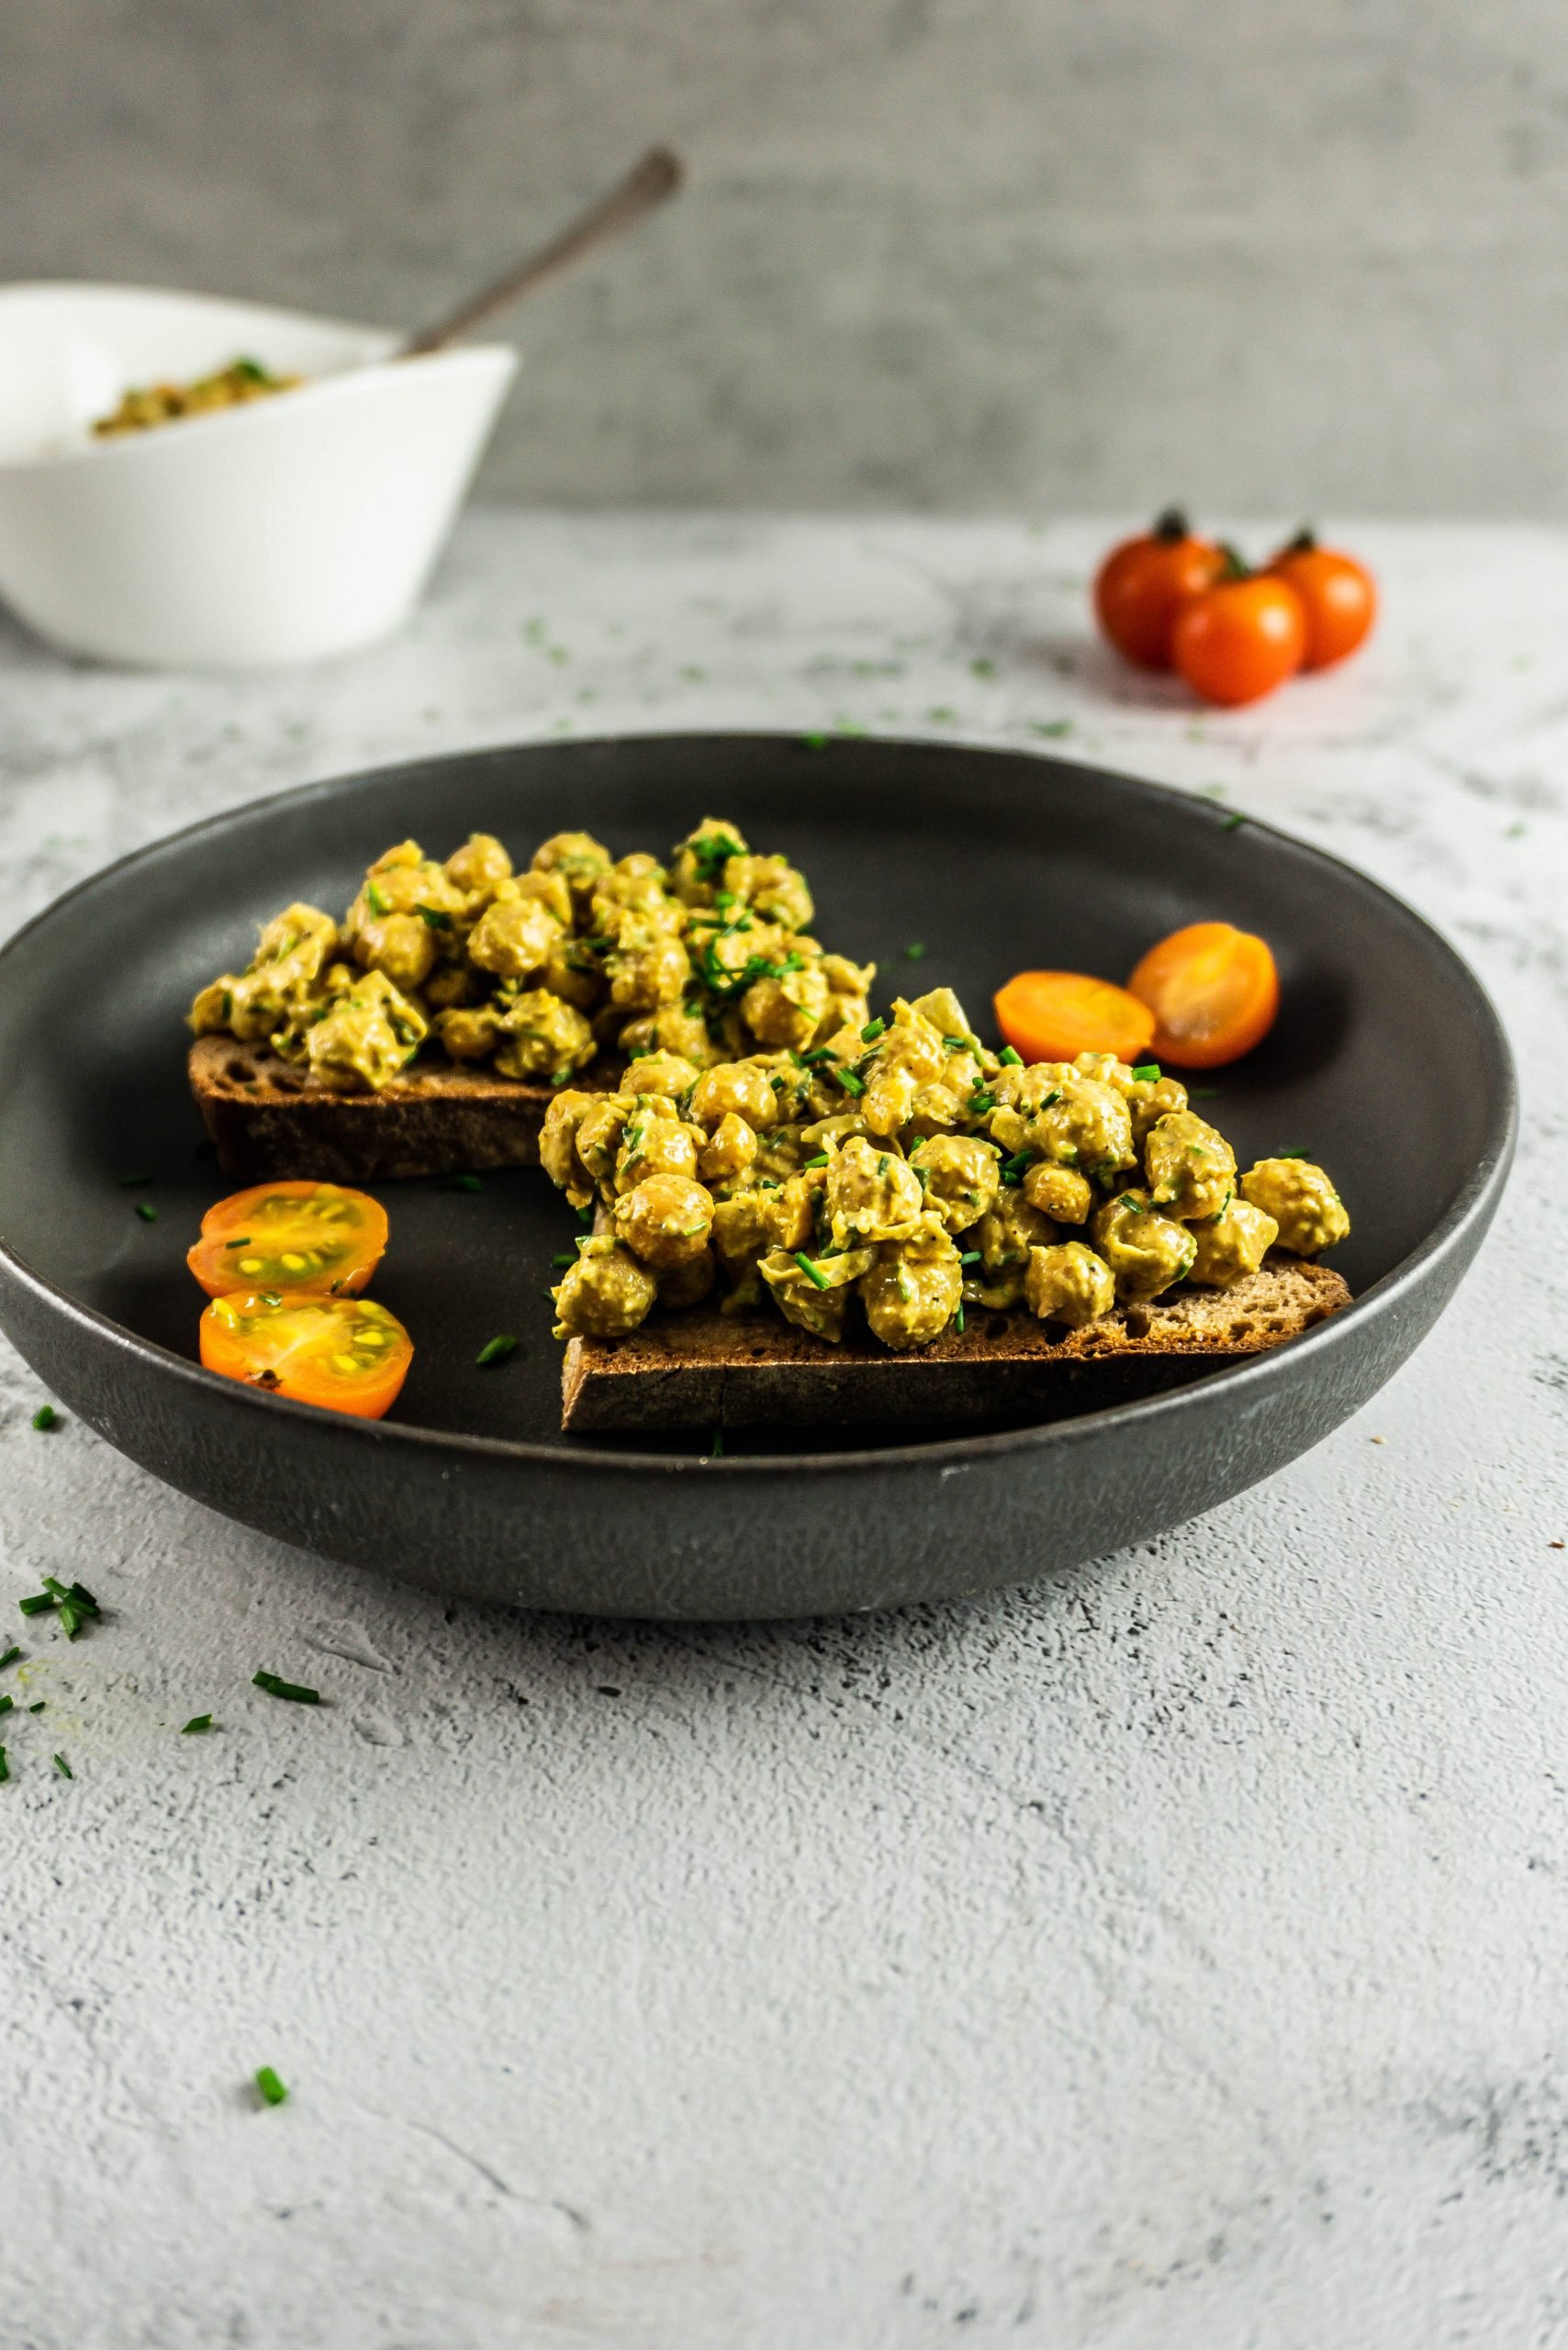 Vegan Curried Chickpea Spread on a dark plate with chopped chives and tomatoes visible in the background